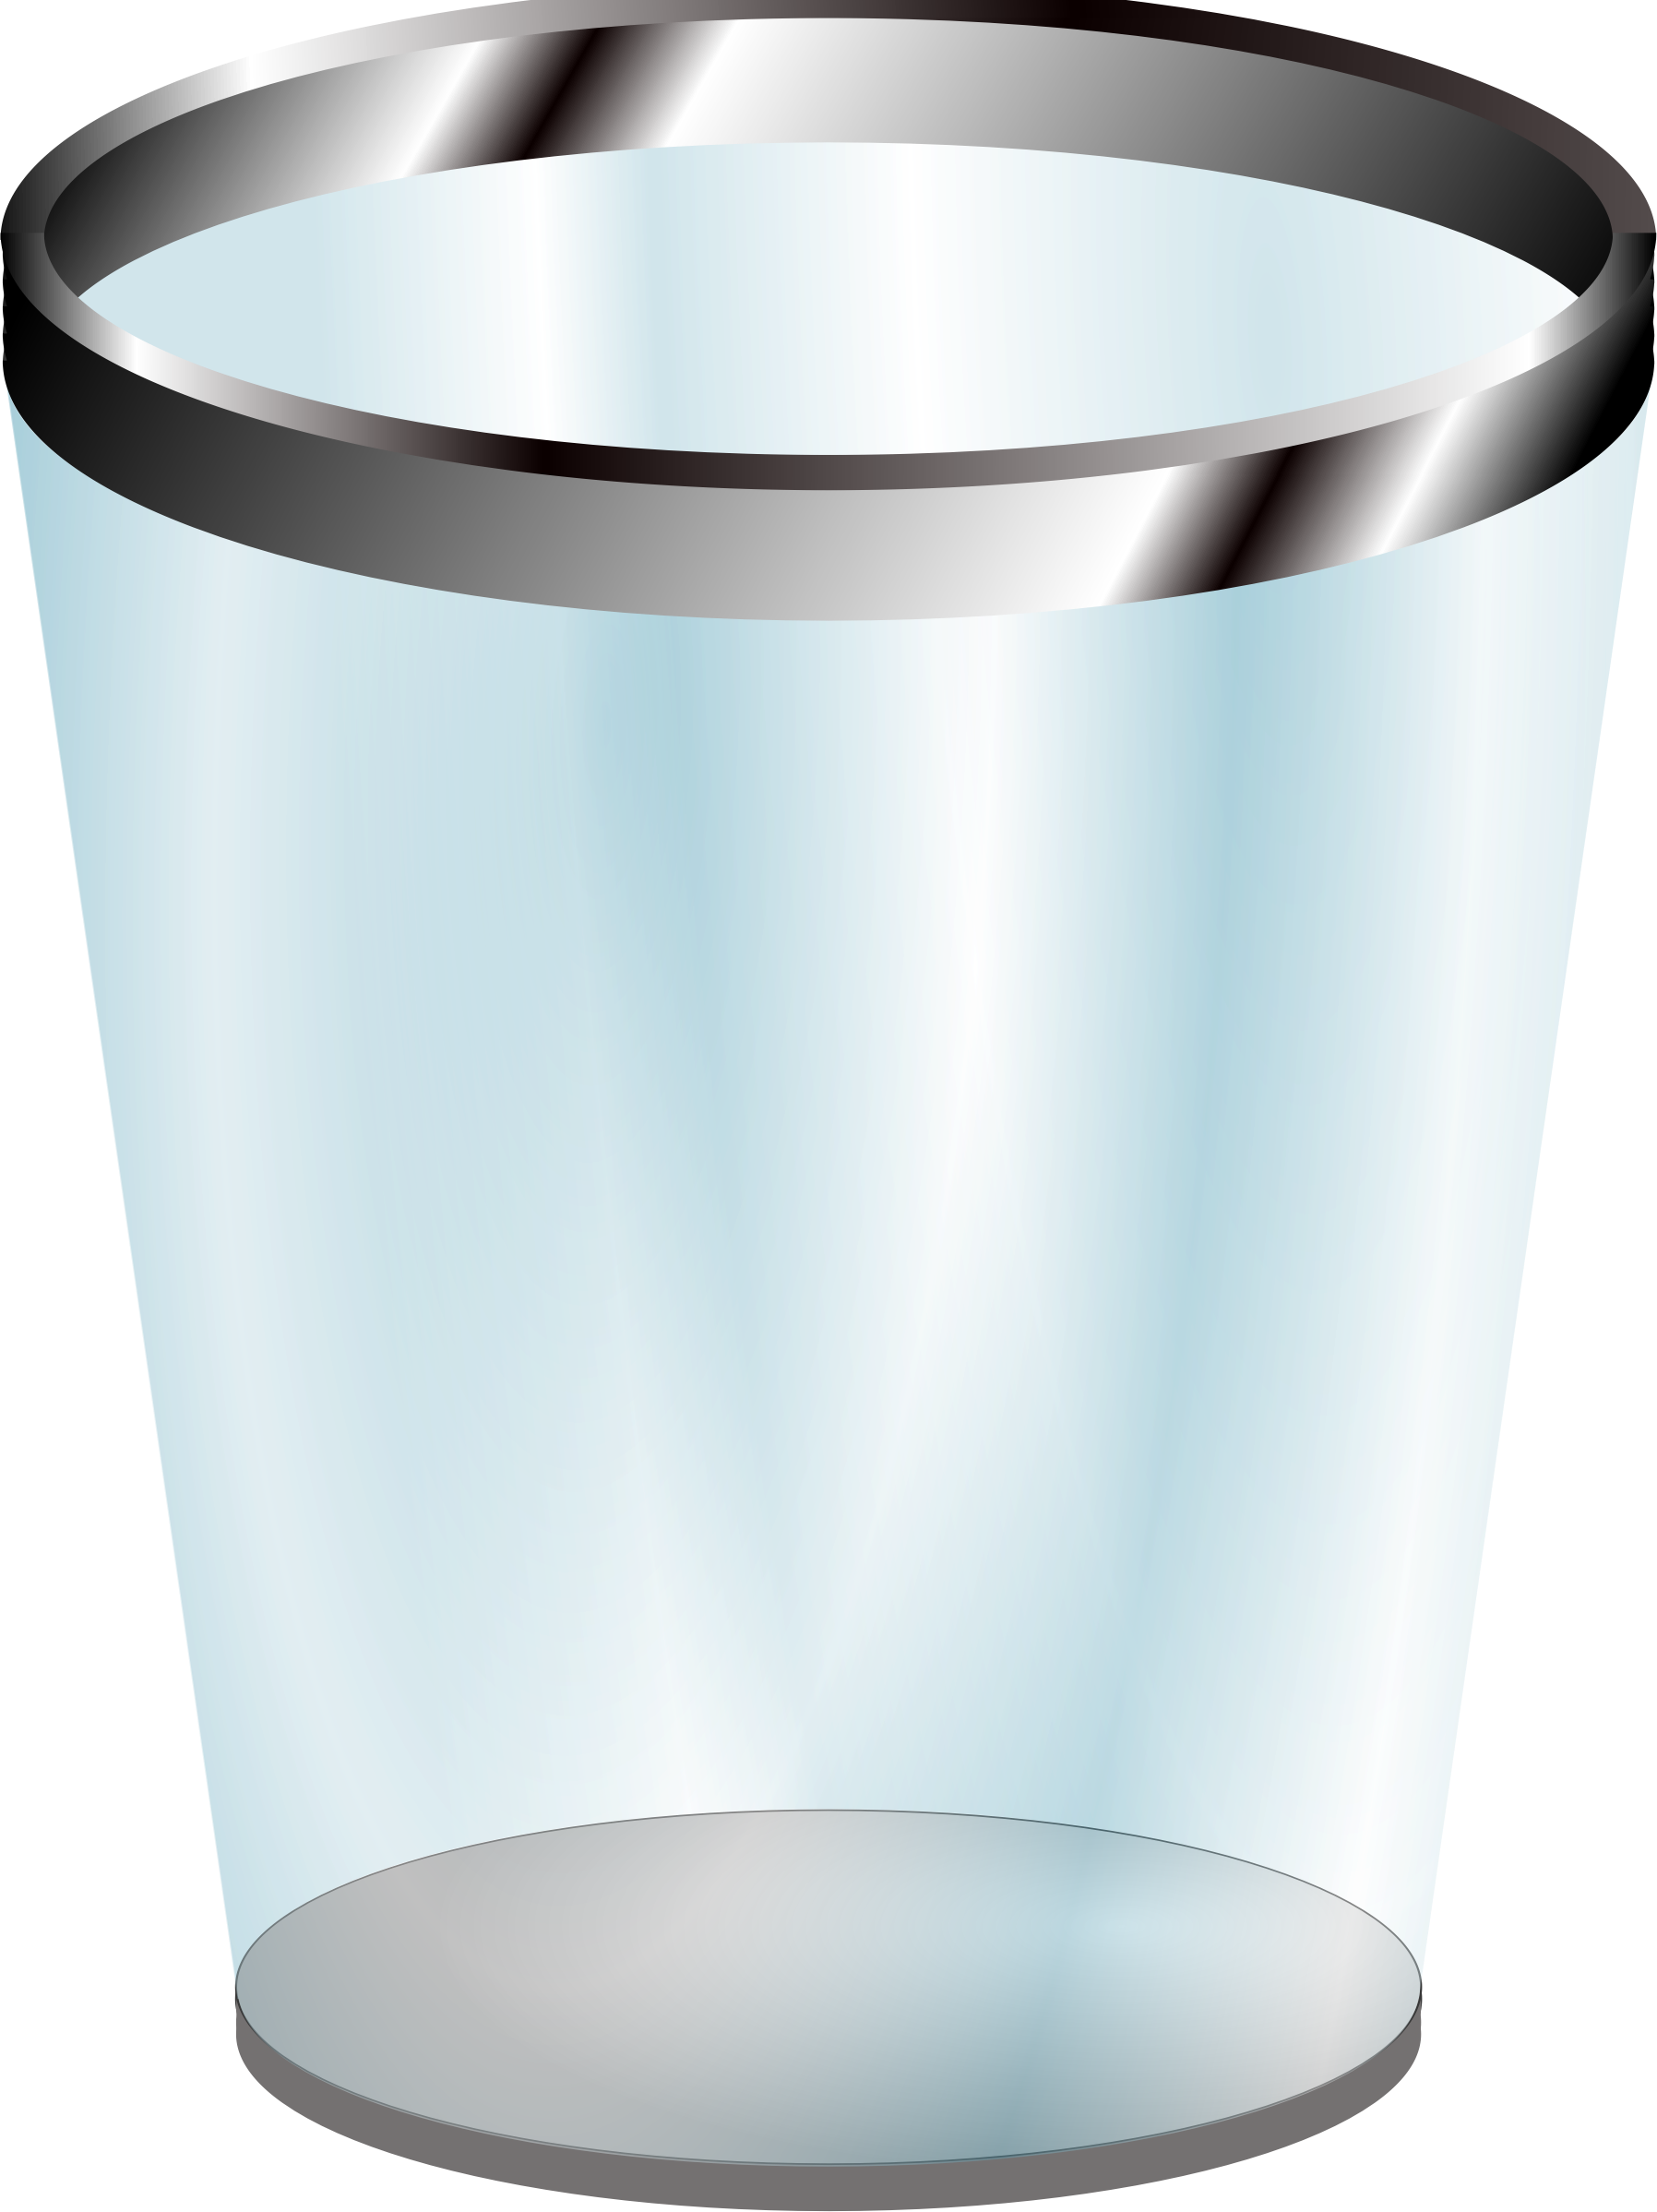 Transparent trashcan. Trash can png image